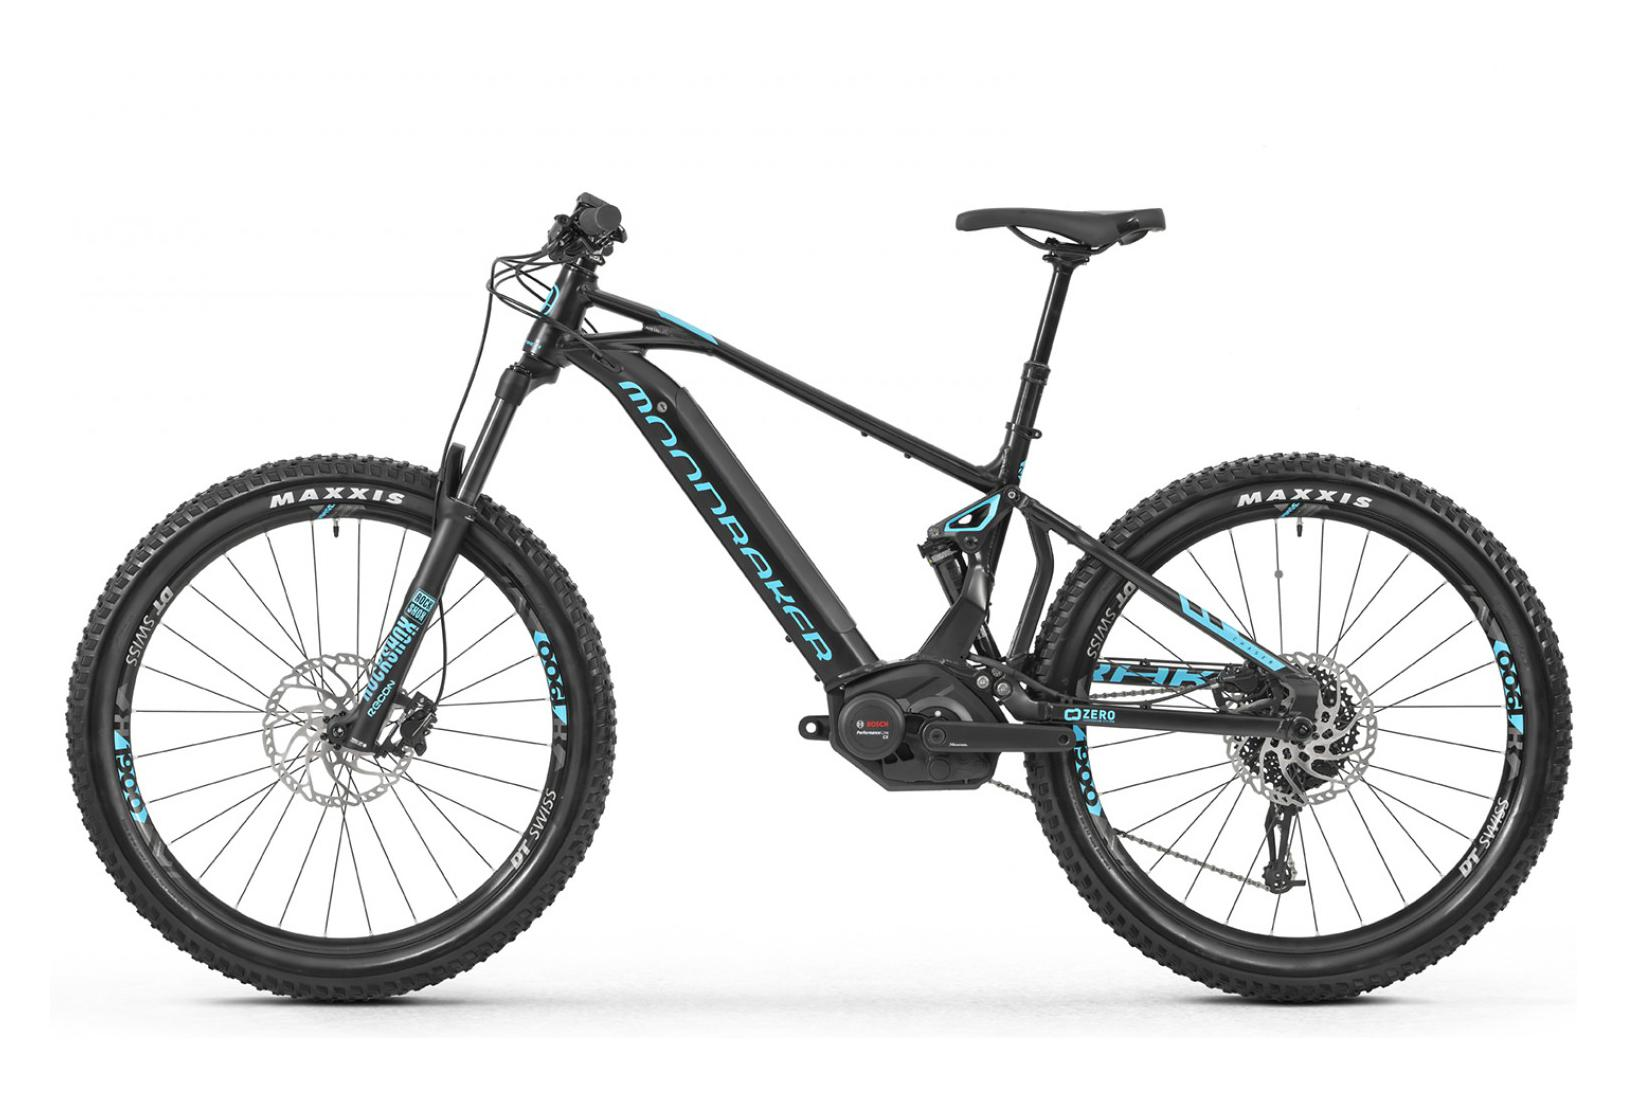 mondraker mtb full suspension electrical chaser sram gx 10s black light blue 2019